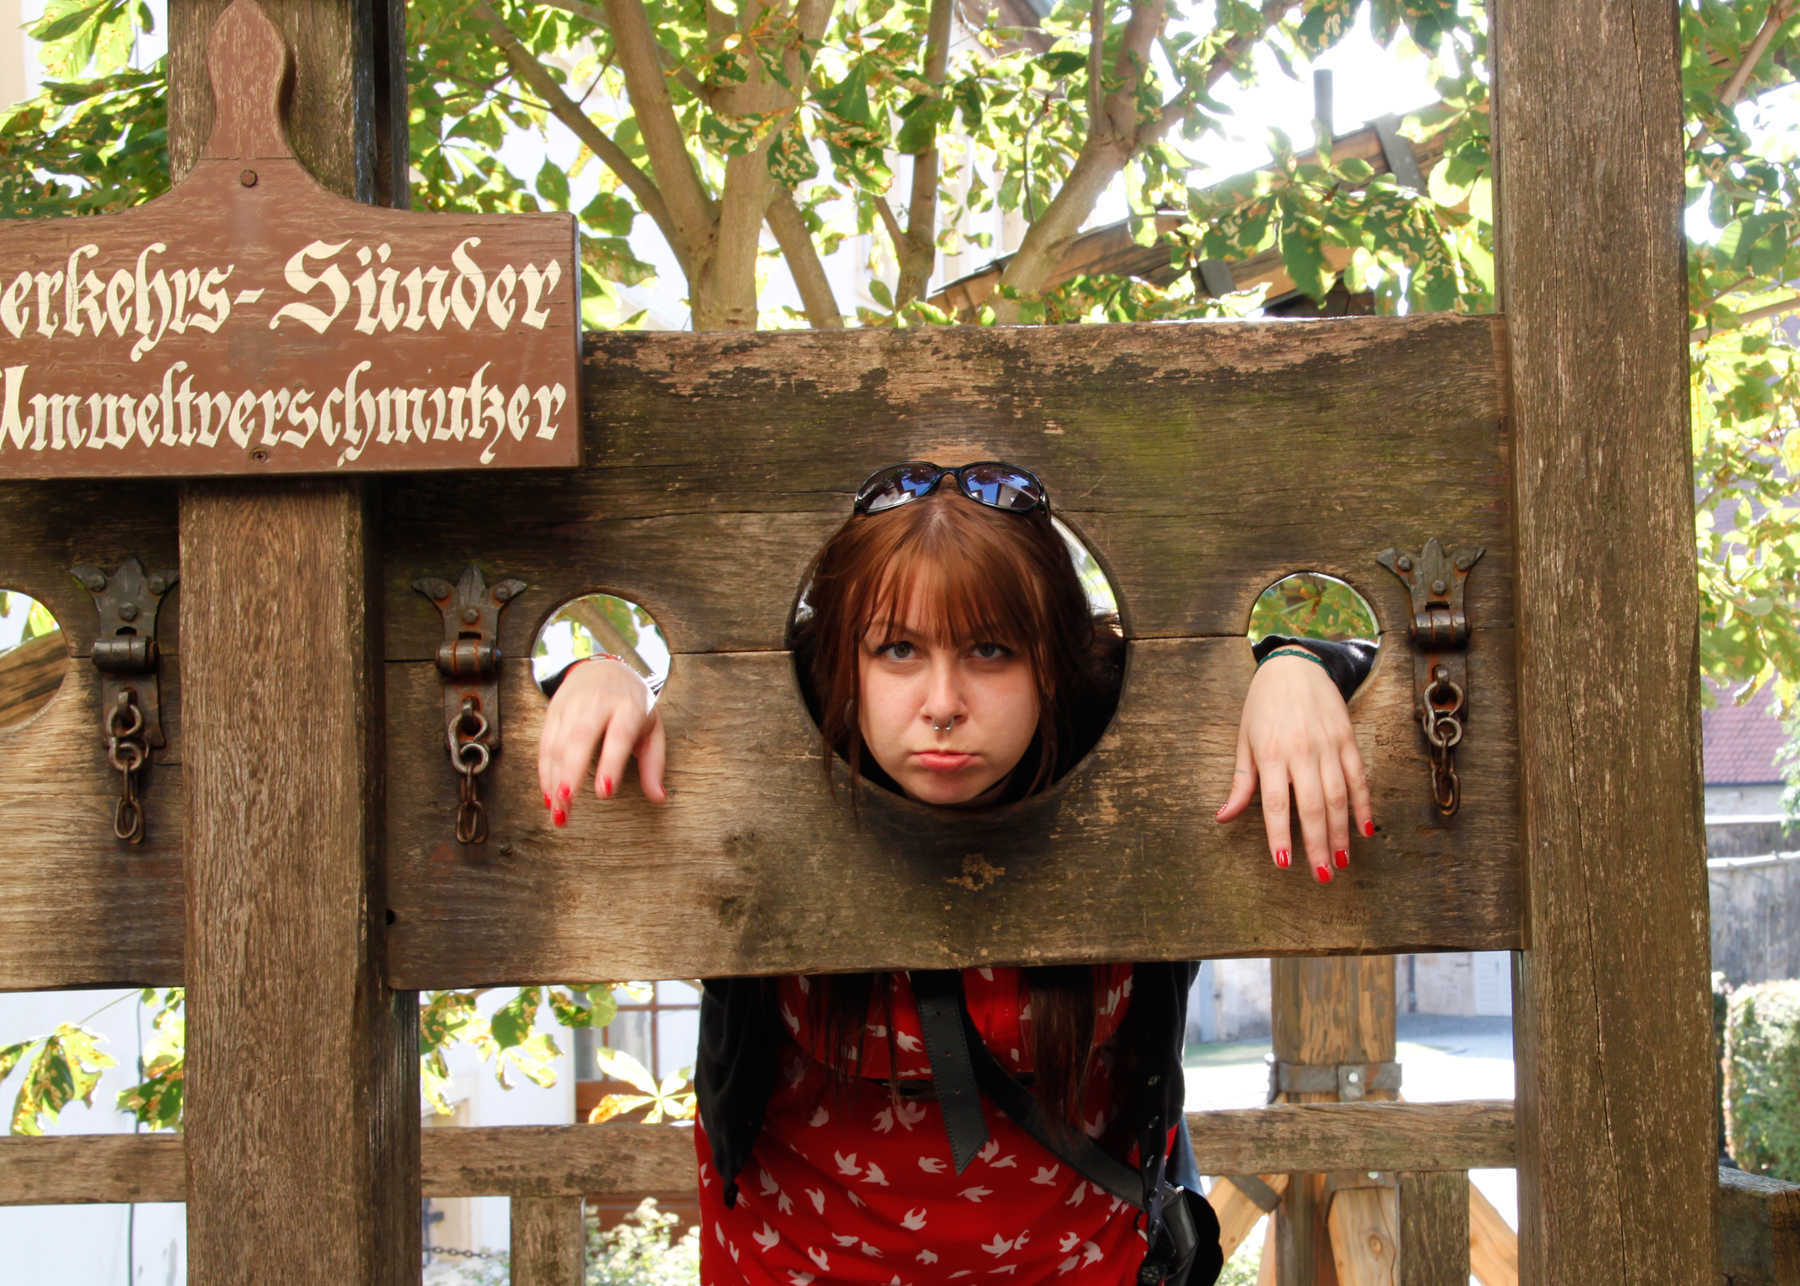 Woman in Stocks, Medieval Crime and Punishment Museum, Rothenburg ob der Tauber, Germany